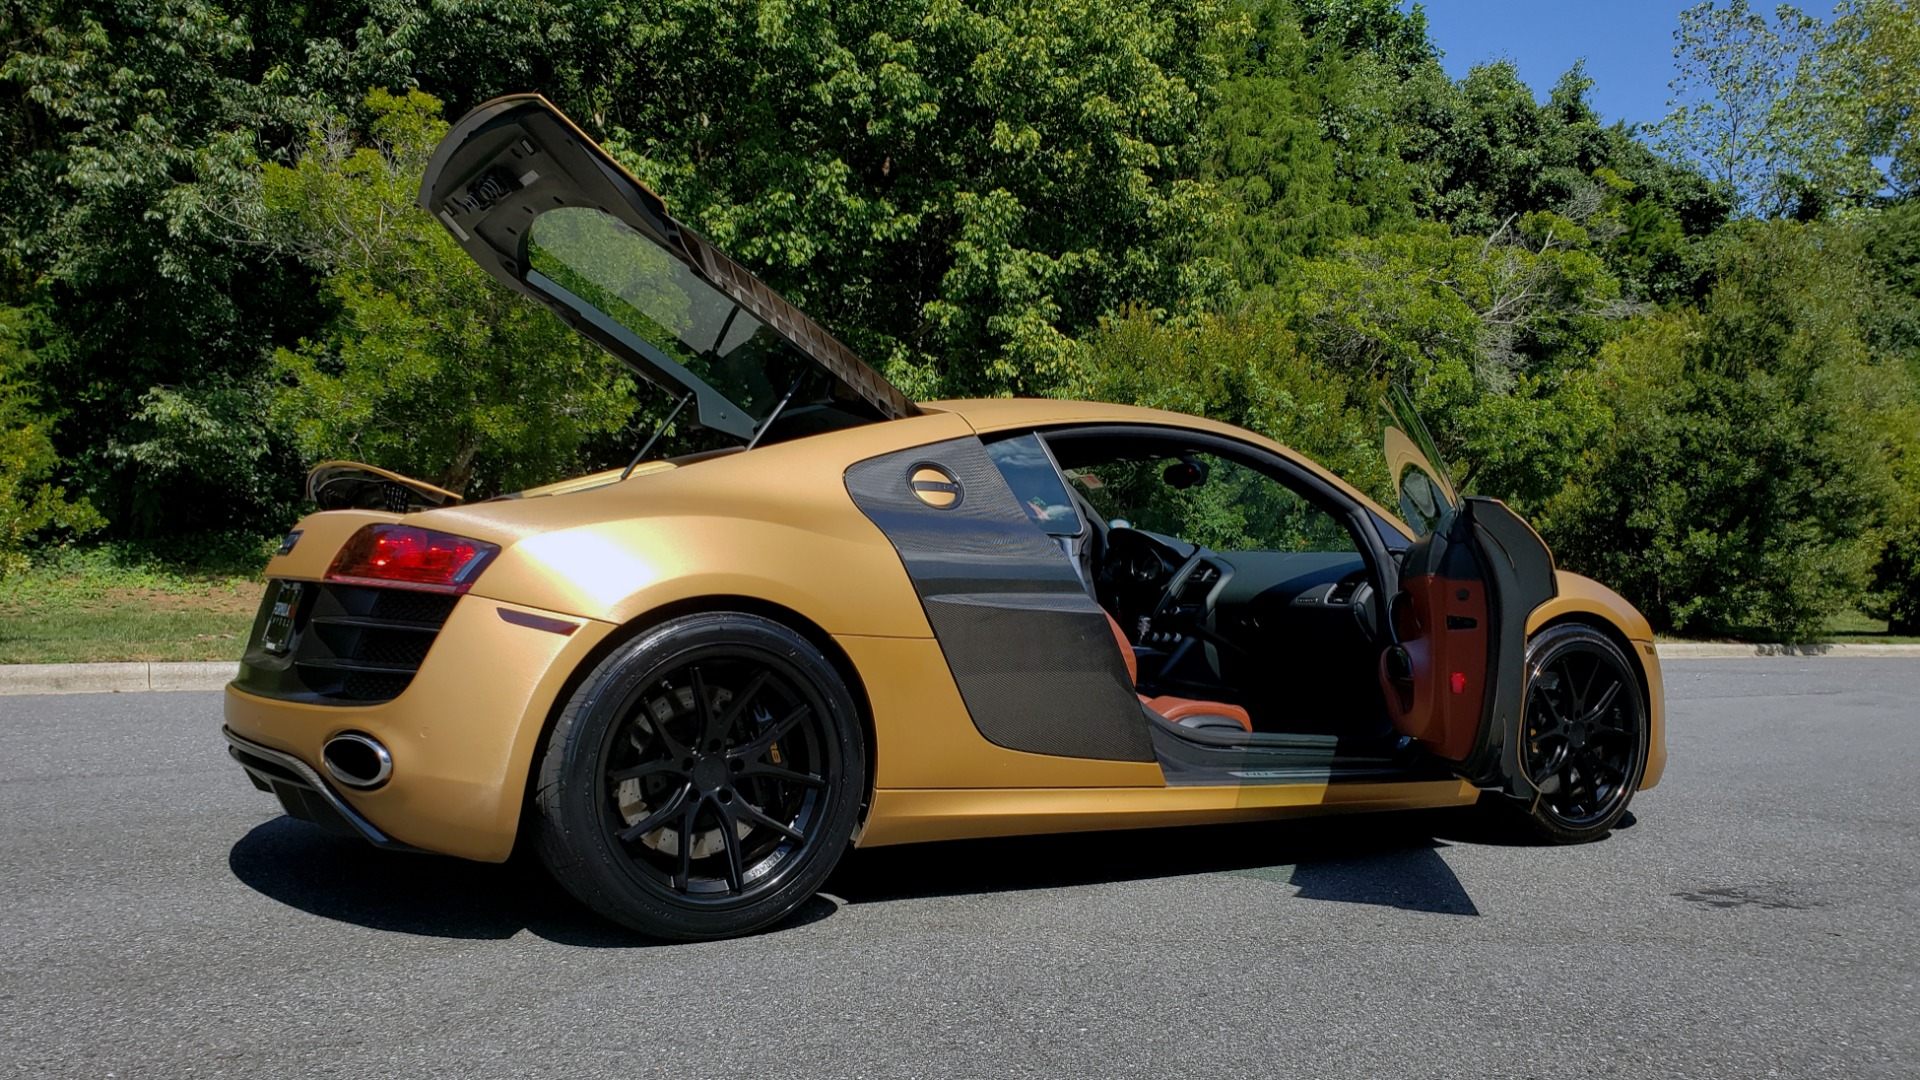 Used 2012 Audi R8 V10 5.2L / CUST WRAP BRUSHED BRONZE / NAV / B&O SOUND / CUST 19IN WHLS for sale $79,999 at Formula Imports in Charlotte NC 28227 12